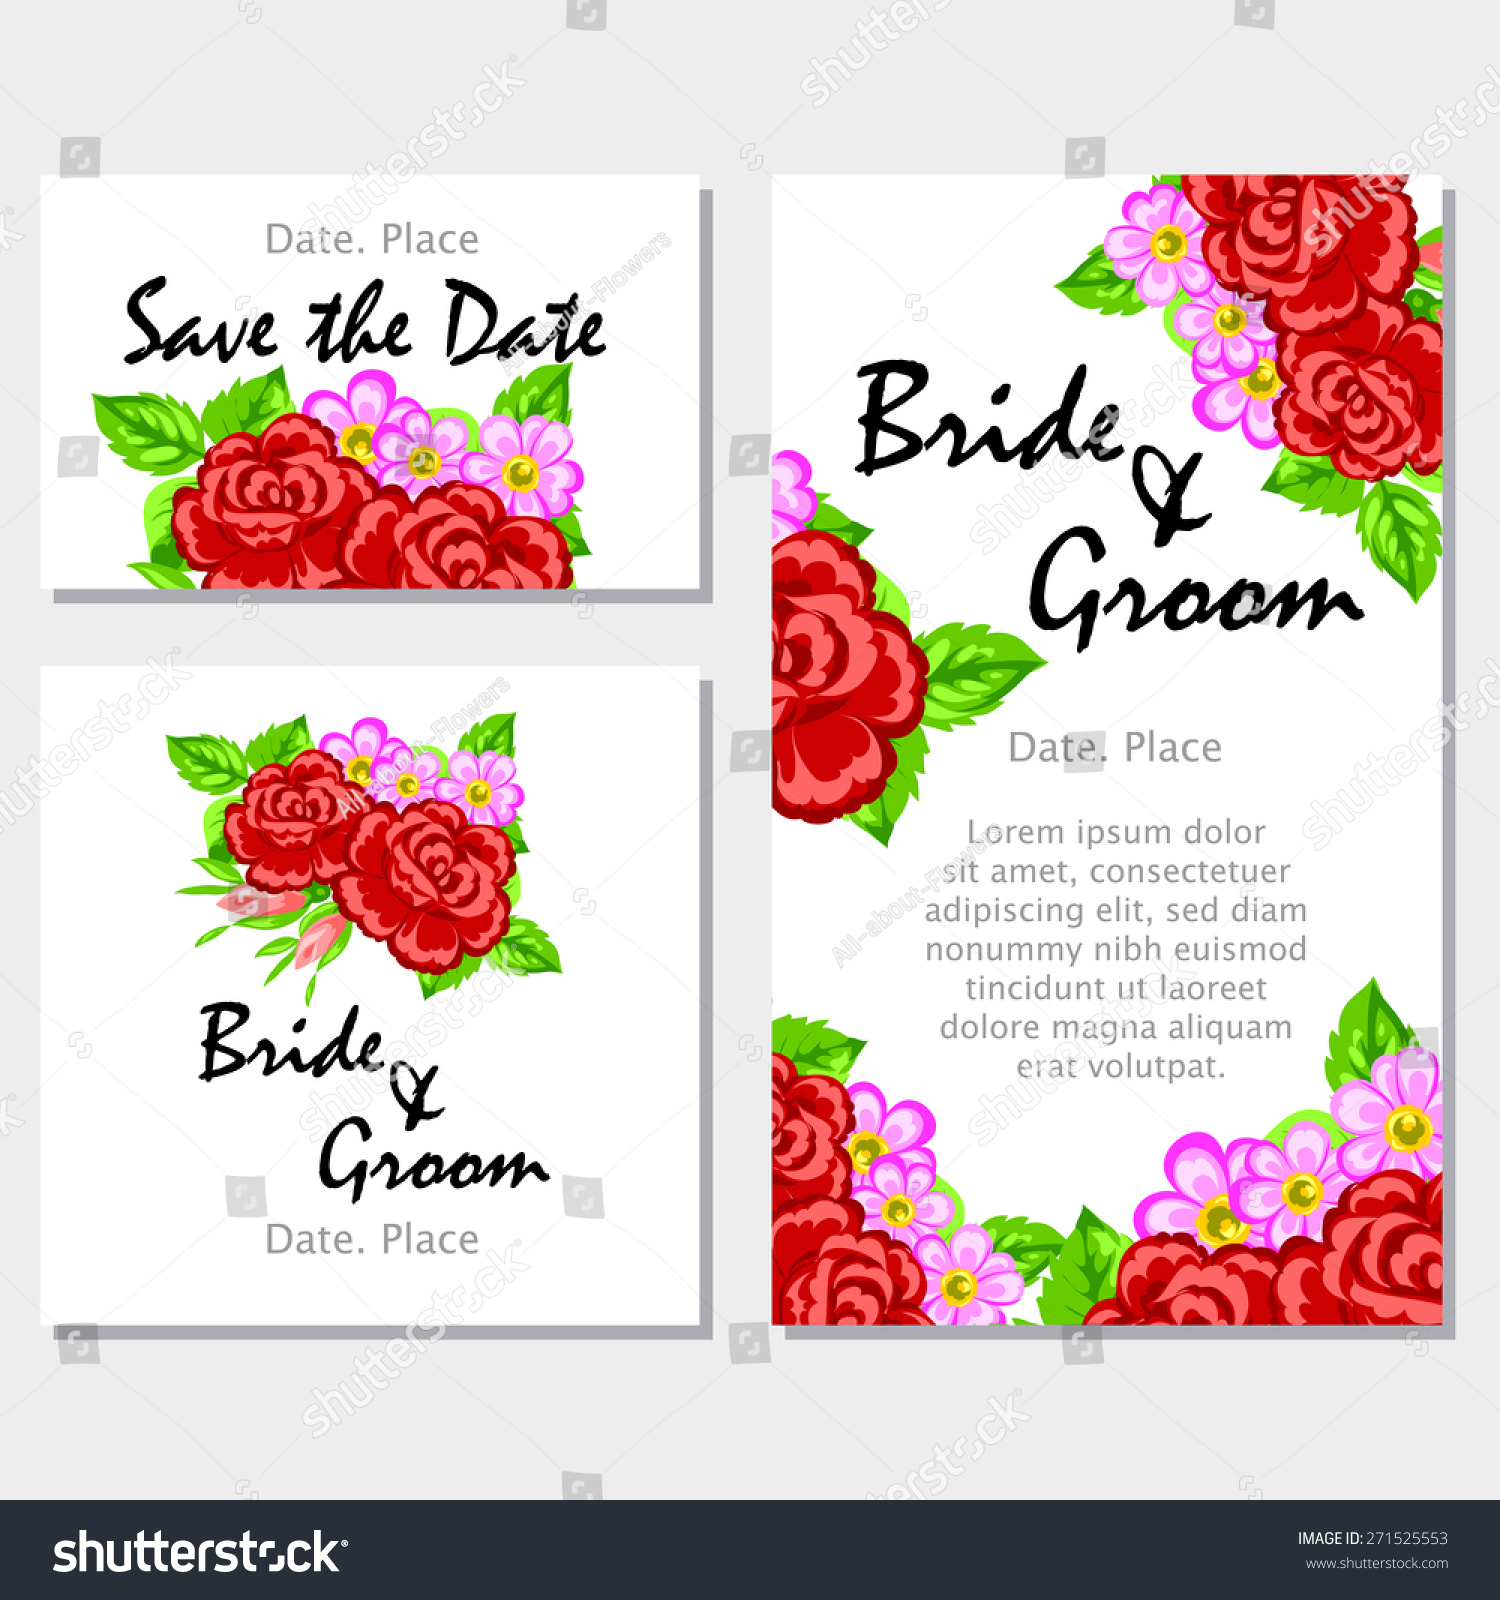 English Rose Wedding Invitation Cards Floral Stock Vector 271525553 ...